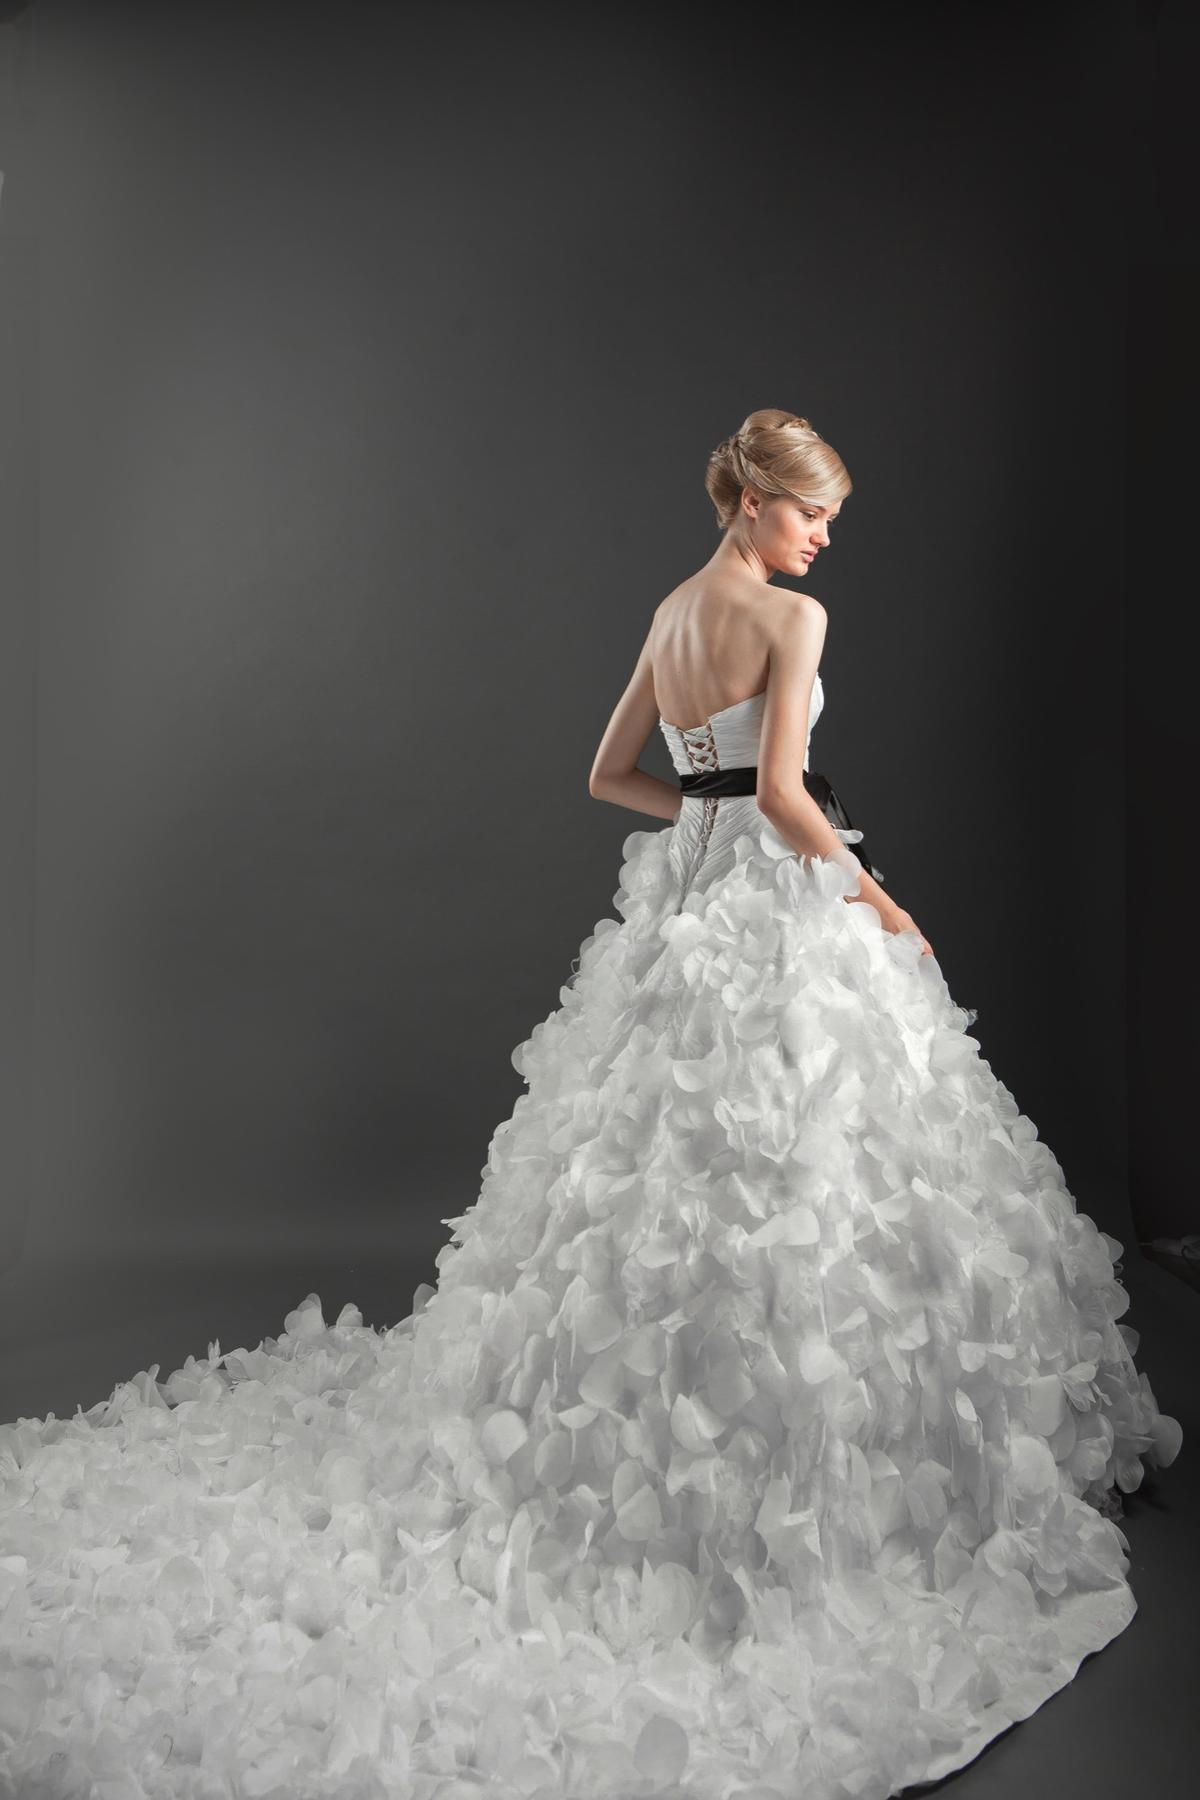 http://www.pwimages.com/images/perfectbride/18ec01228bceccbffe3ad83d45778dd6-IMG_5082.jpg